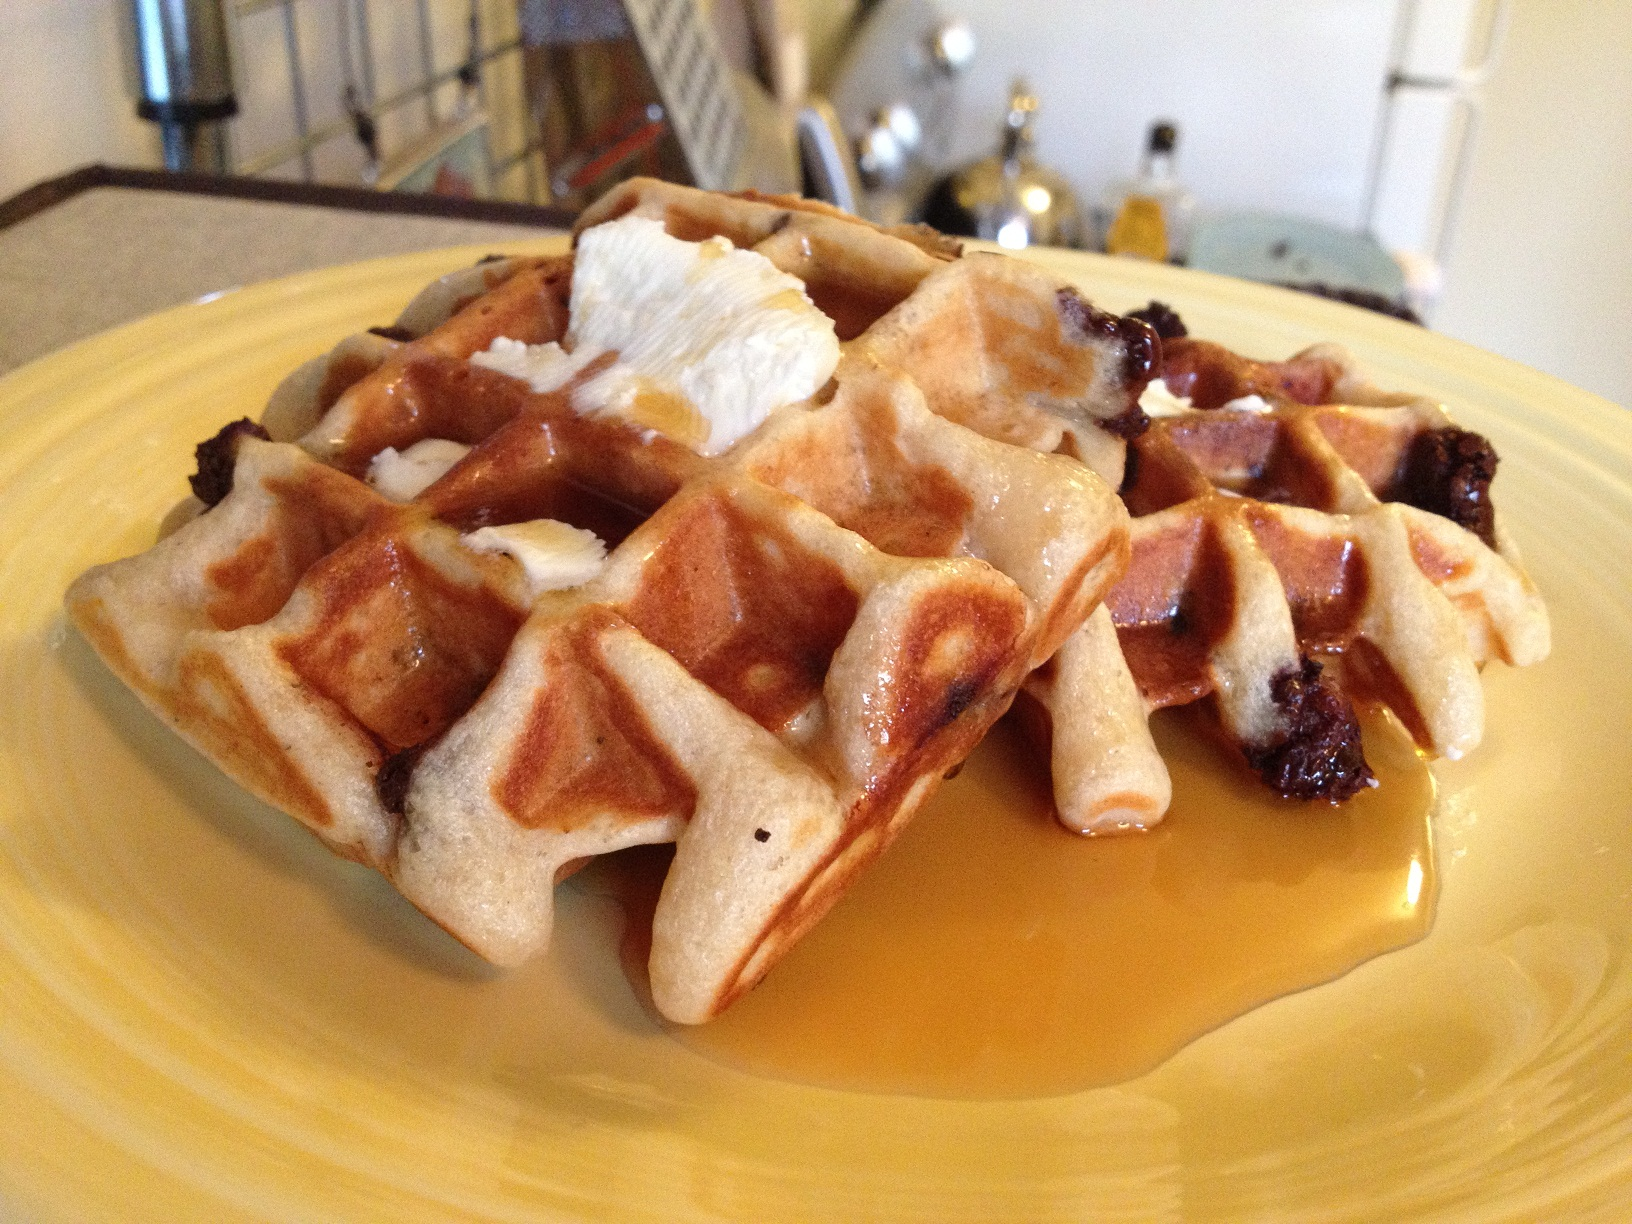 Belgium Waffles with Chocolate Chips